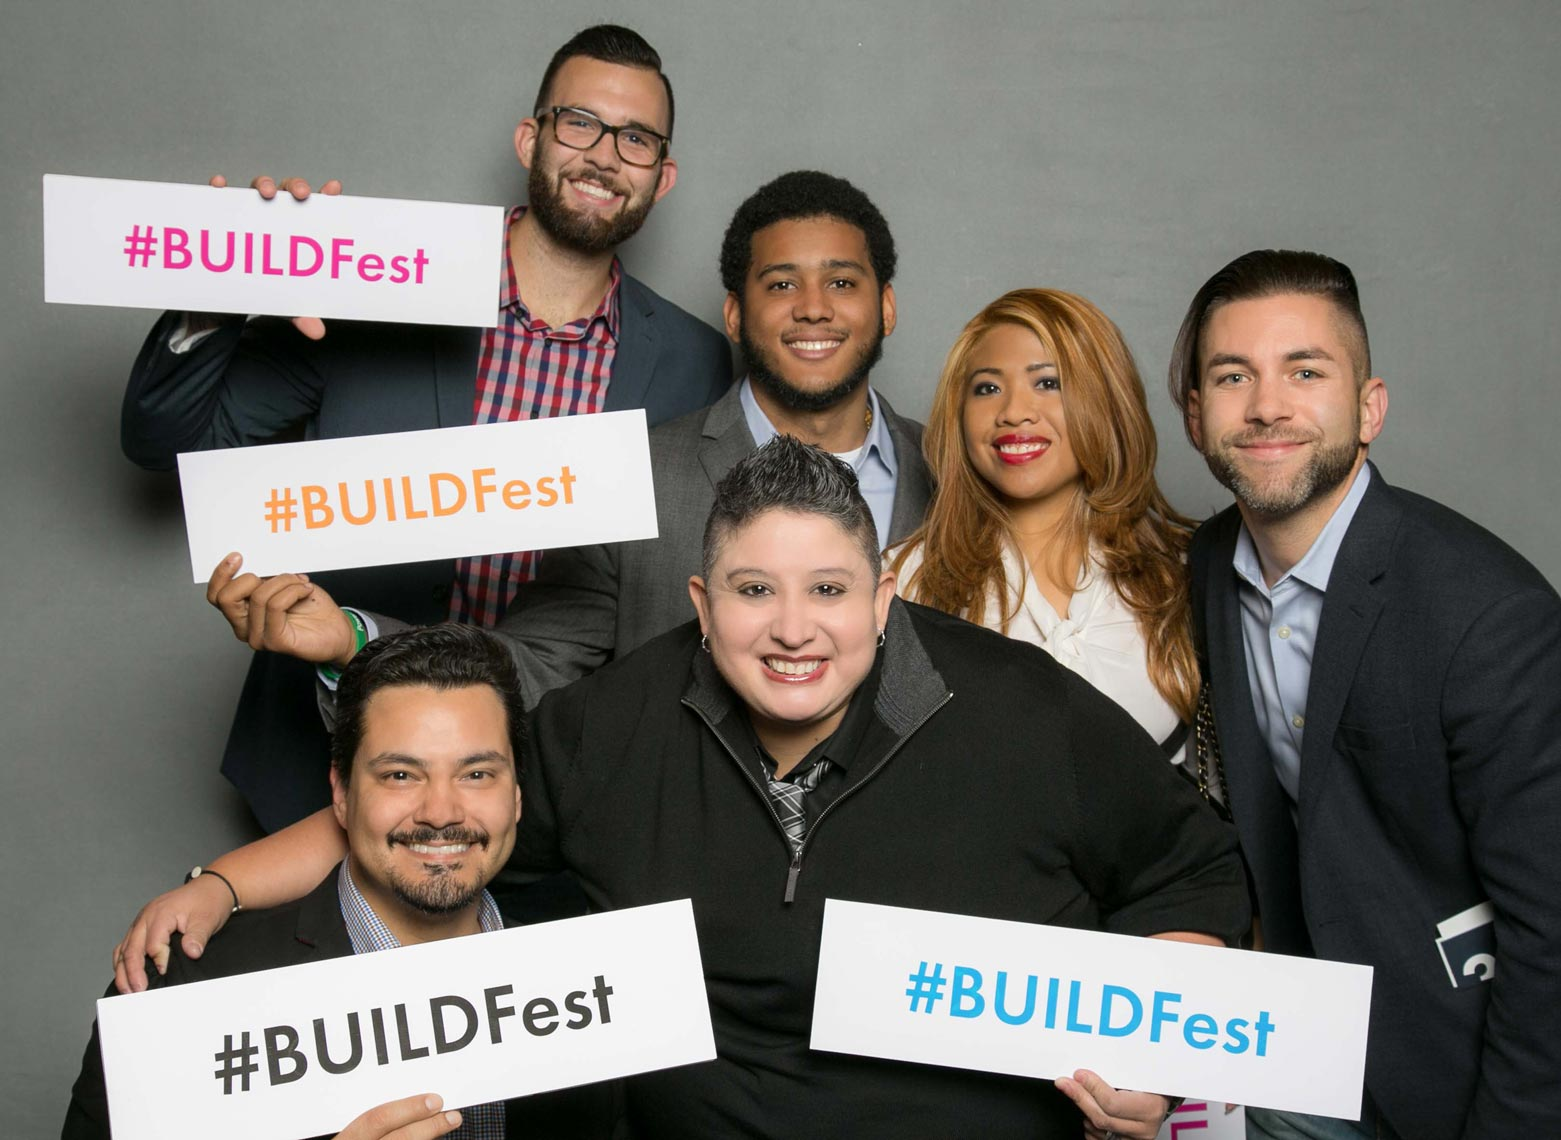 Having Fun at the Photo Booth at BuildFest Boston